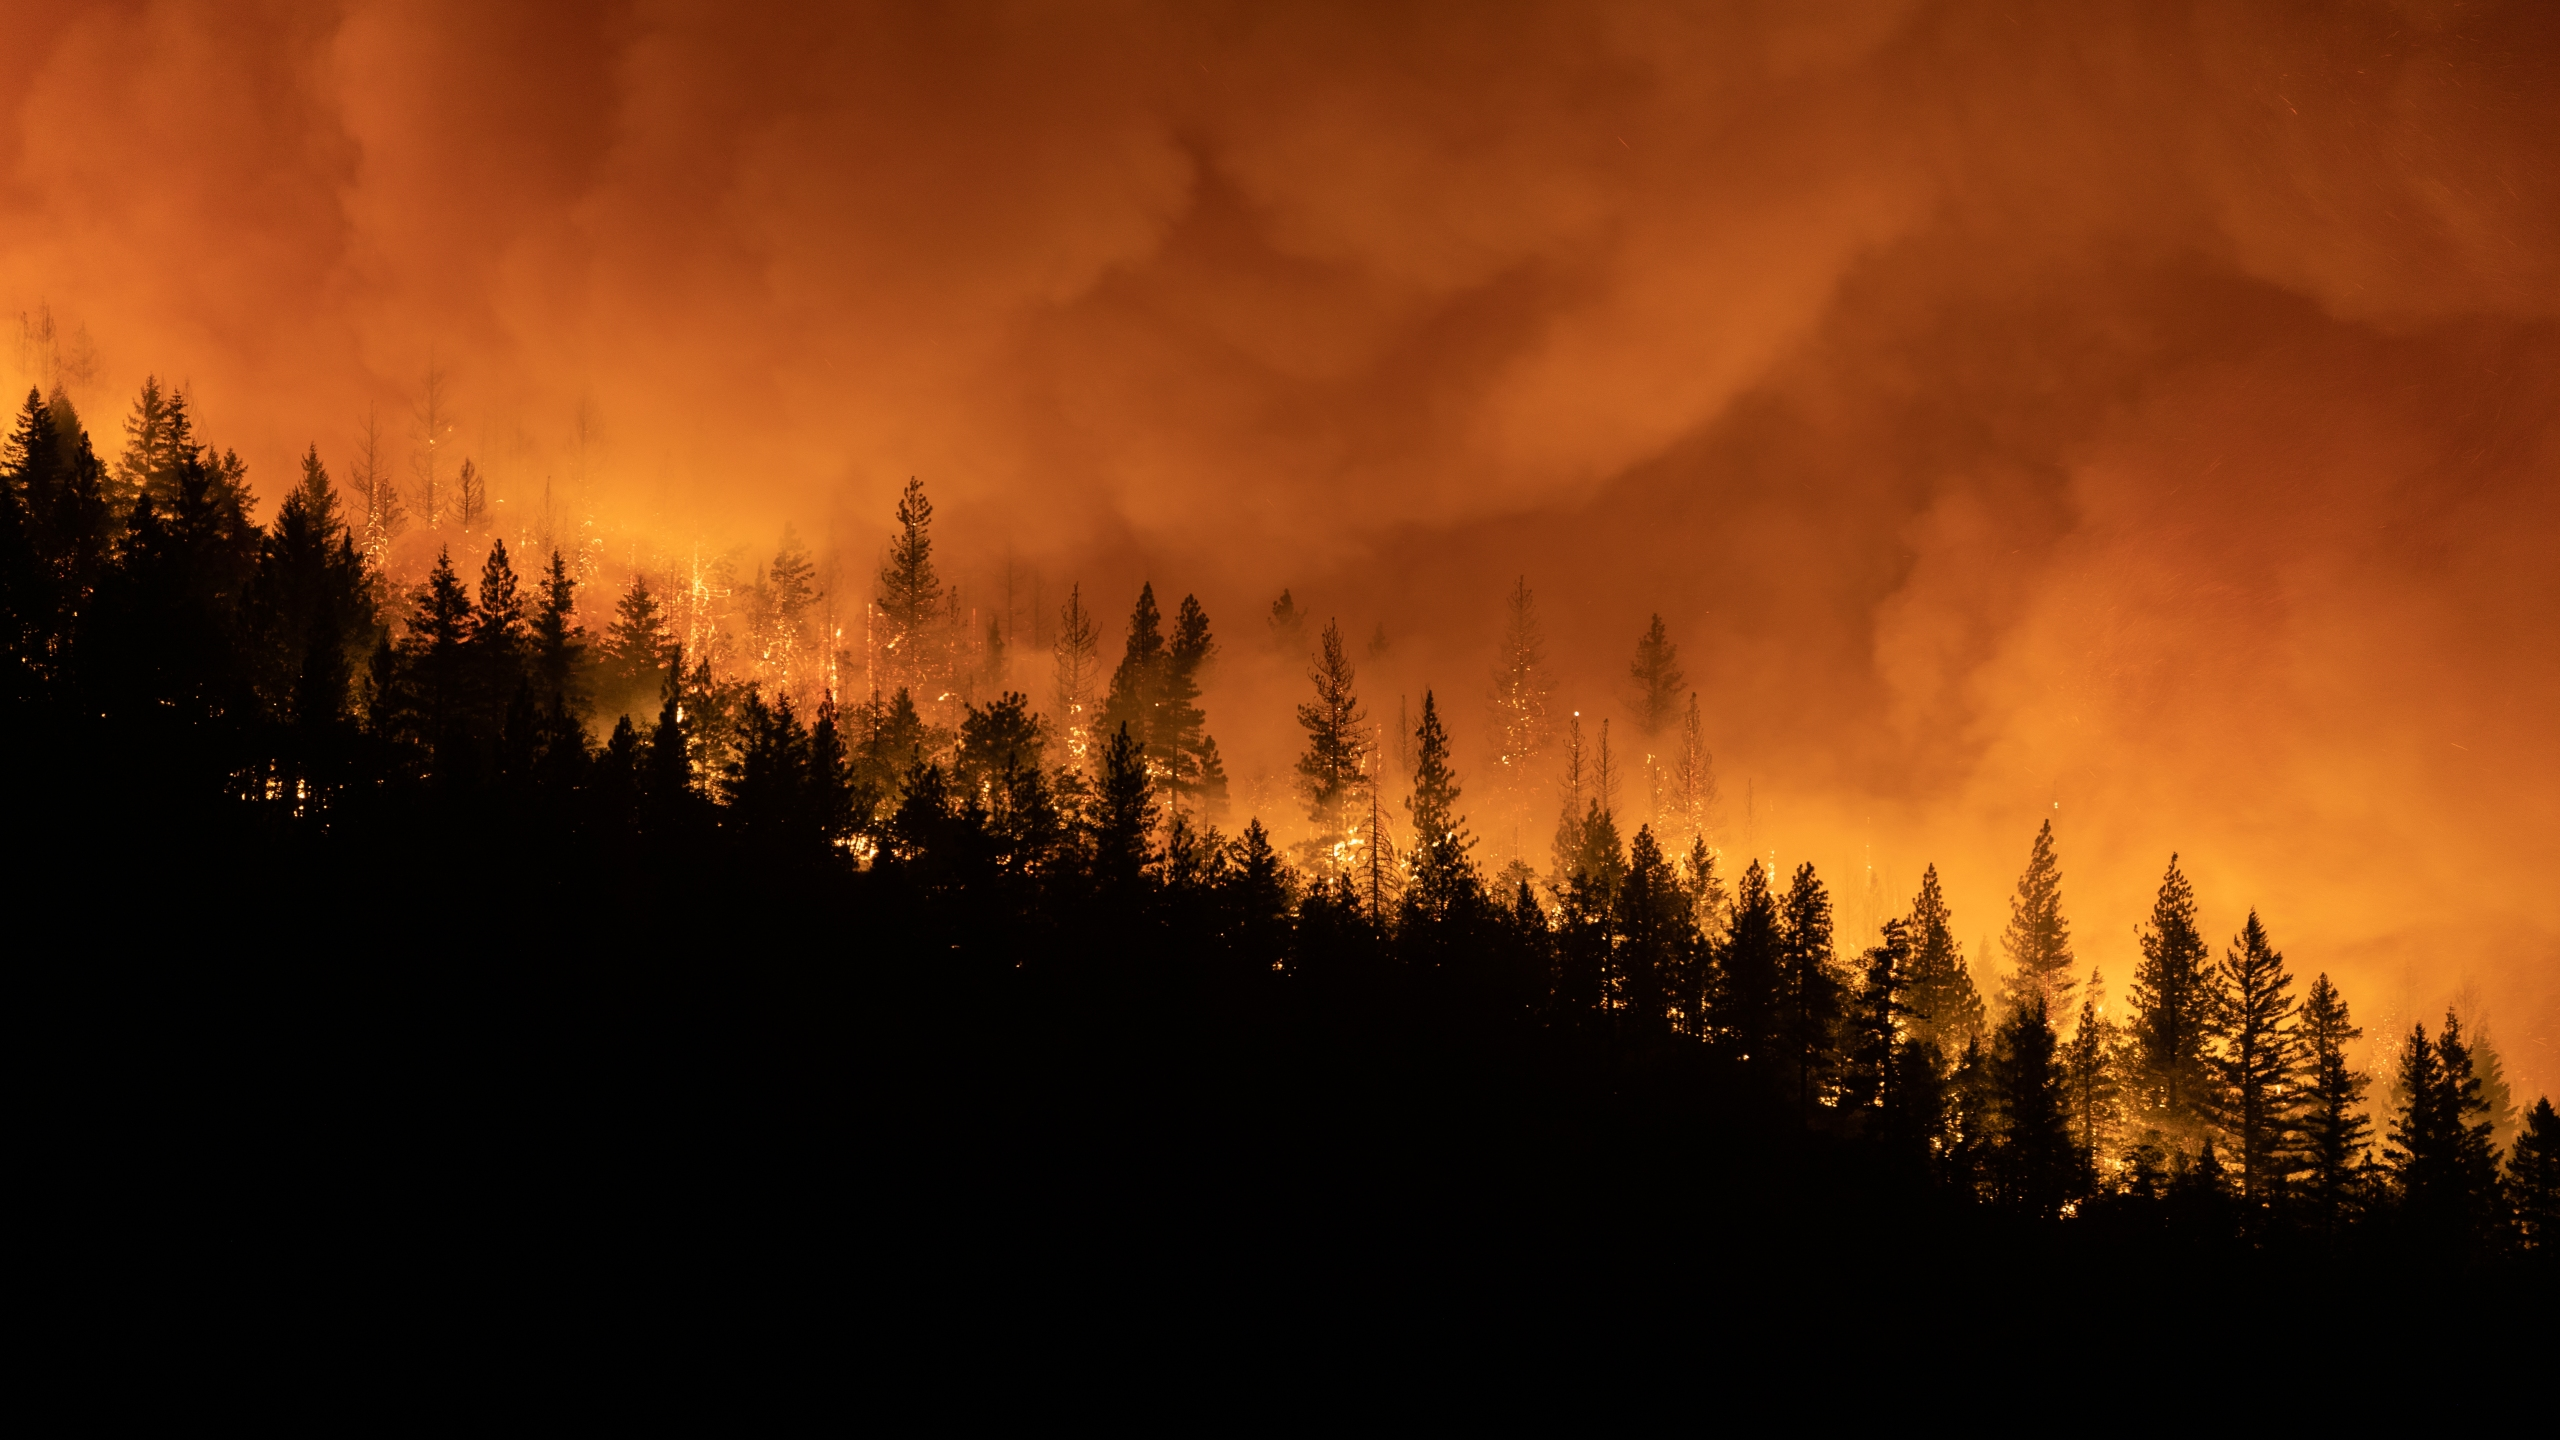 The Dixie Fire burns on a mountain ridge sending embers into the air on Aug. 5, 2021 in Greenville. (Trevor Bexon/Getty Images)